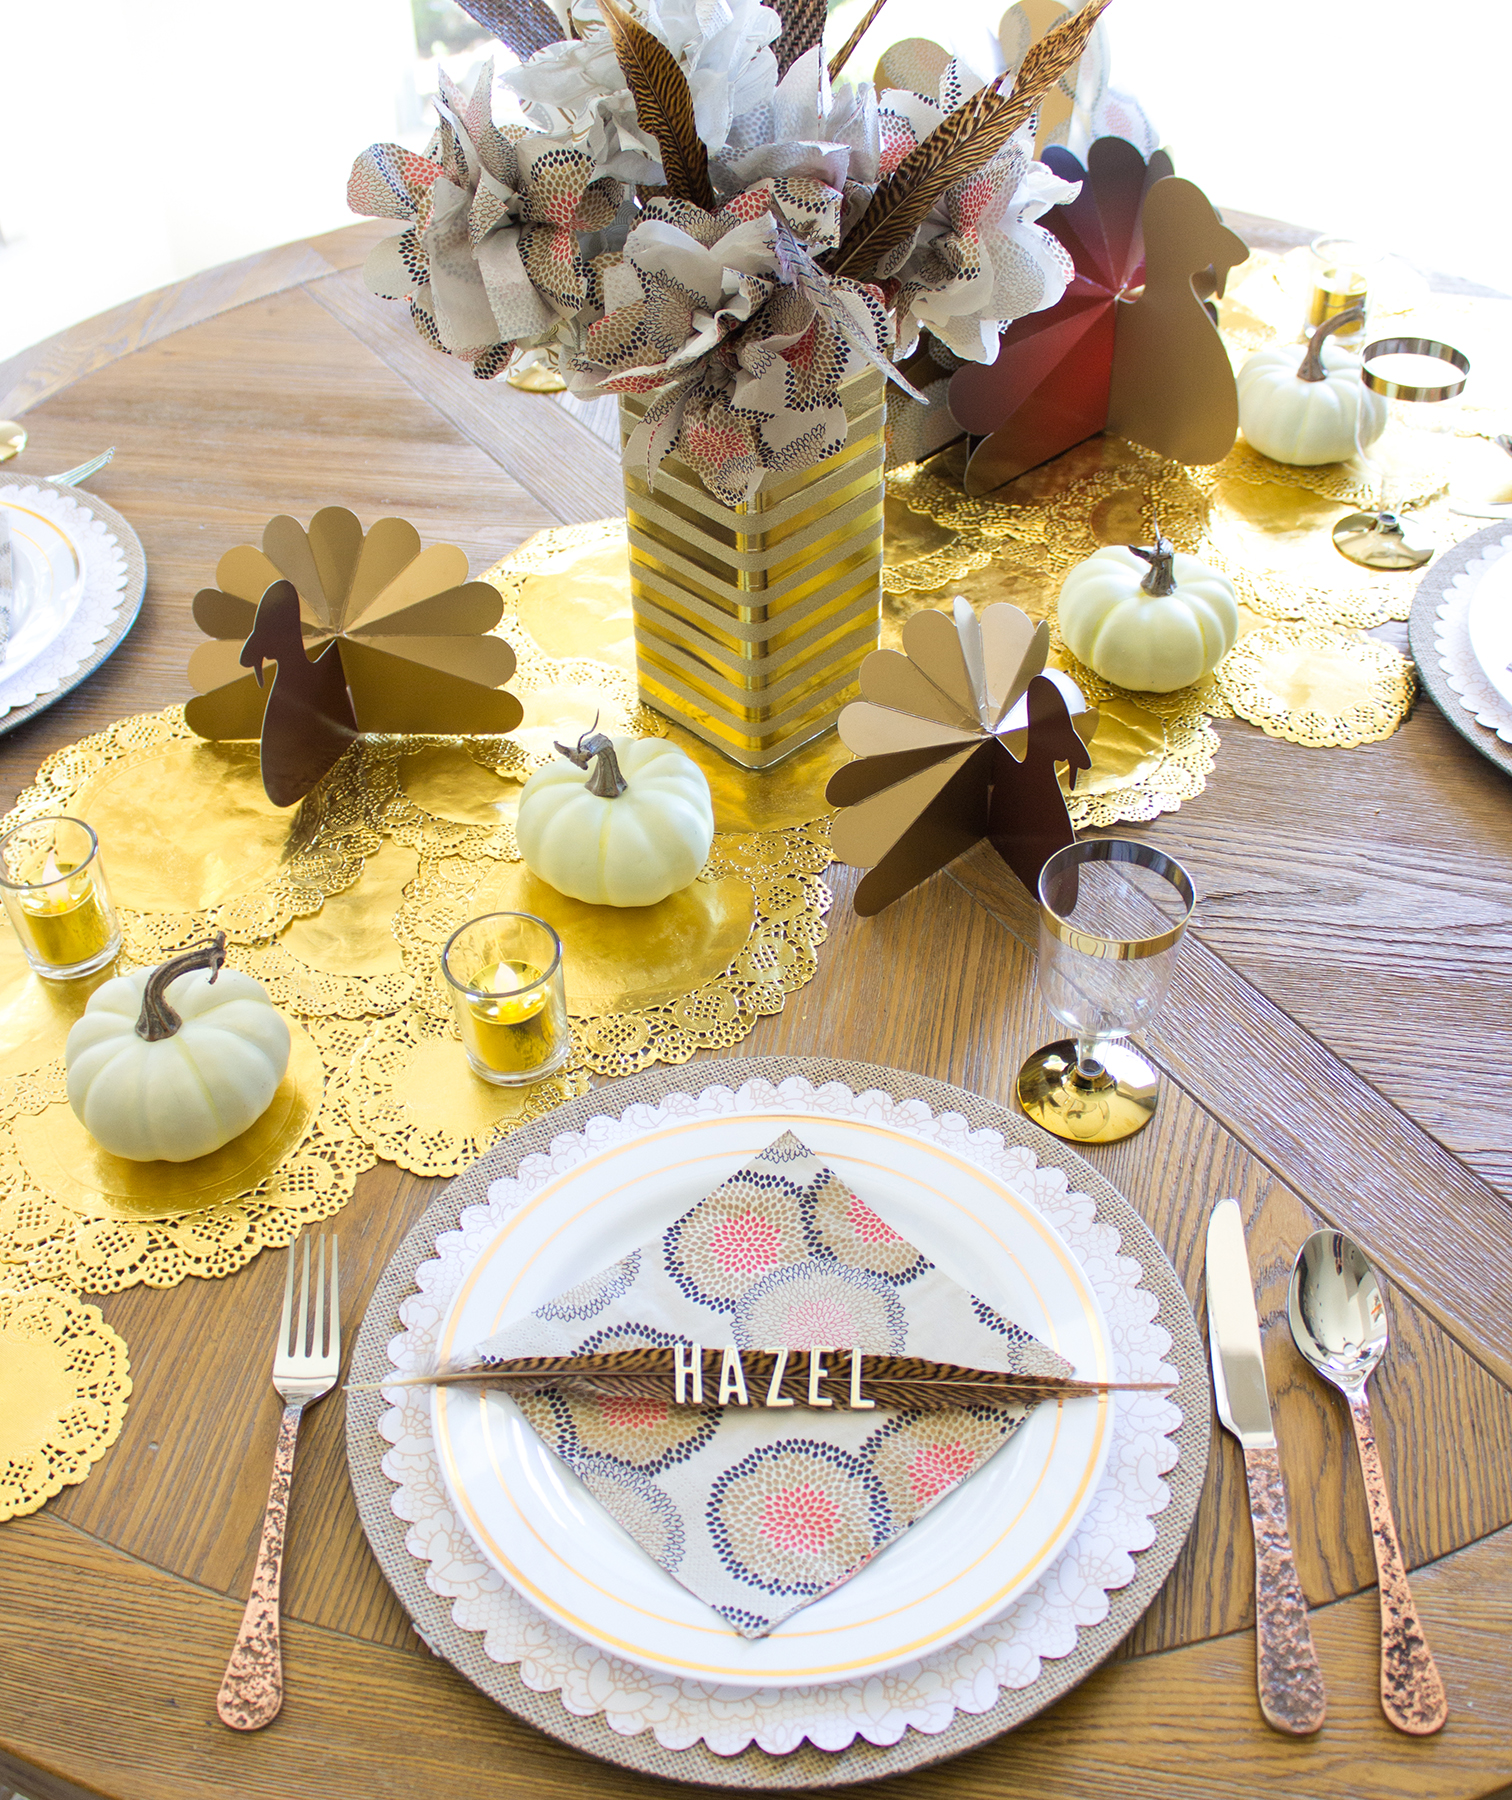 30 Thanksgiving Table Decor Ideas For 2018 - Thanksgiving-table-cloth